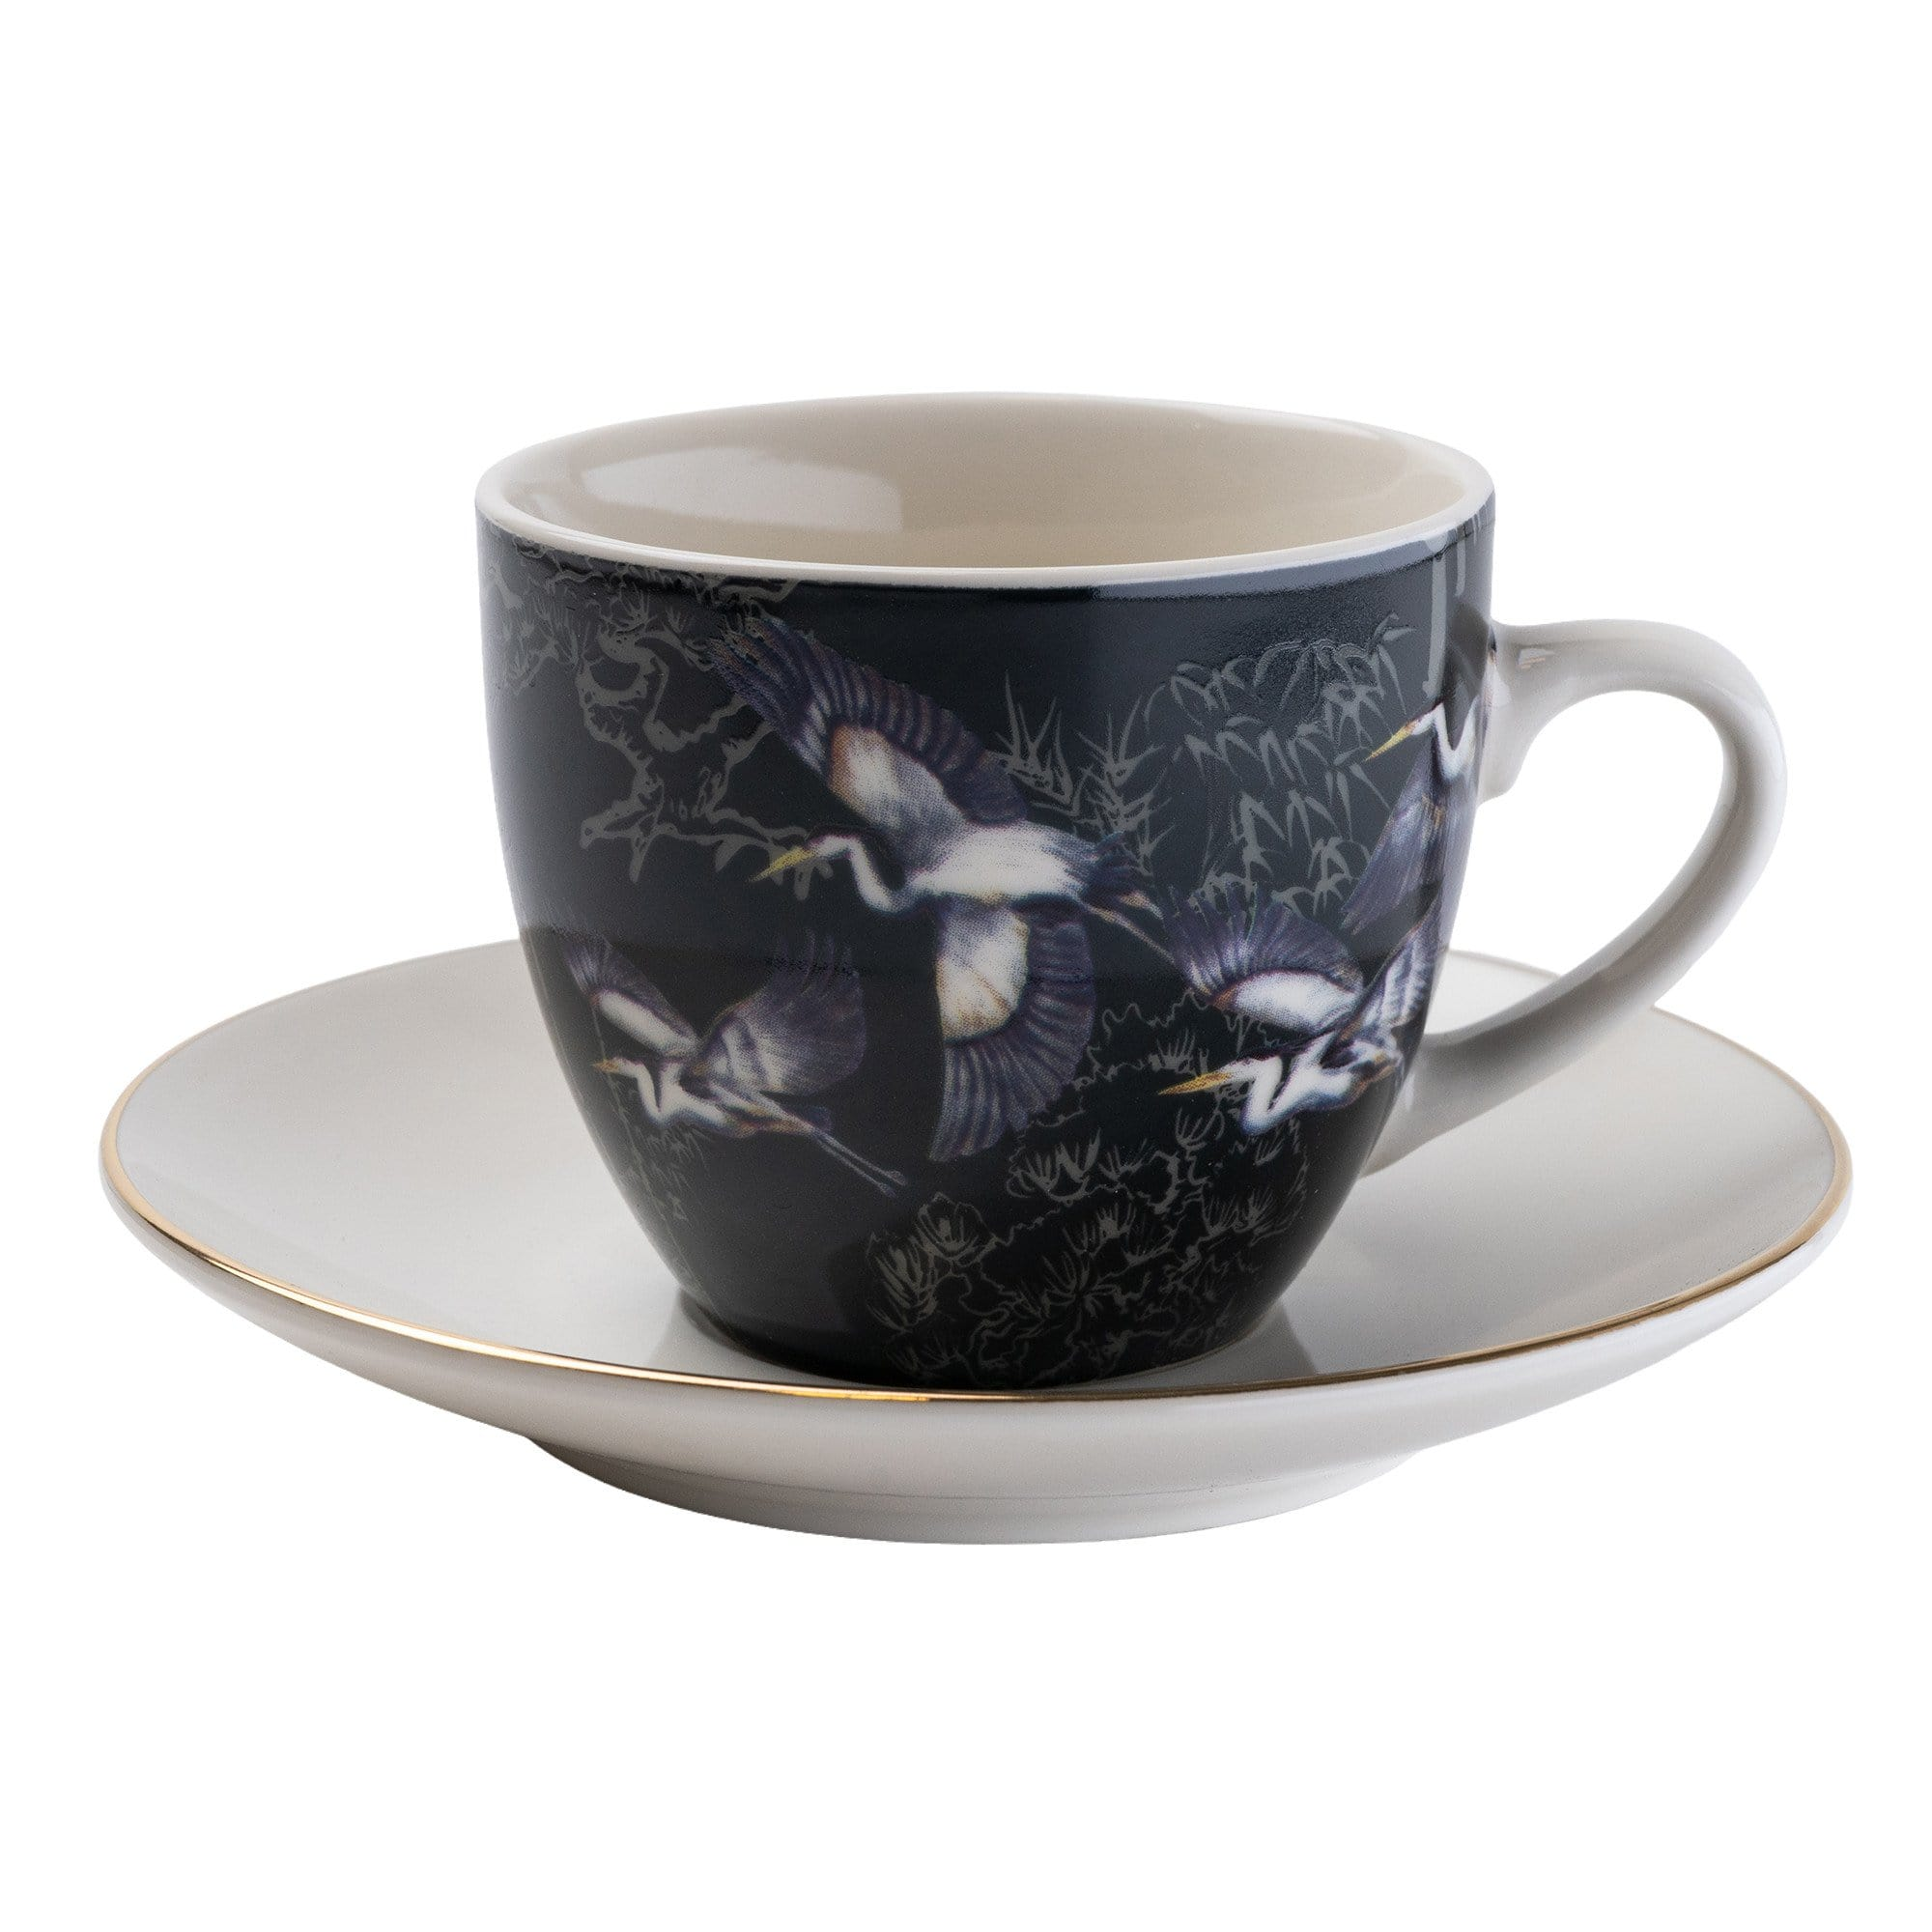 2080 set of 4 teacups and saucers gift